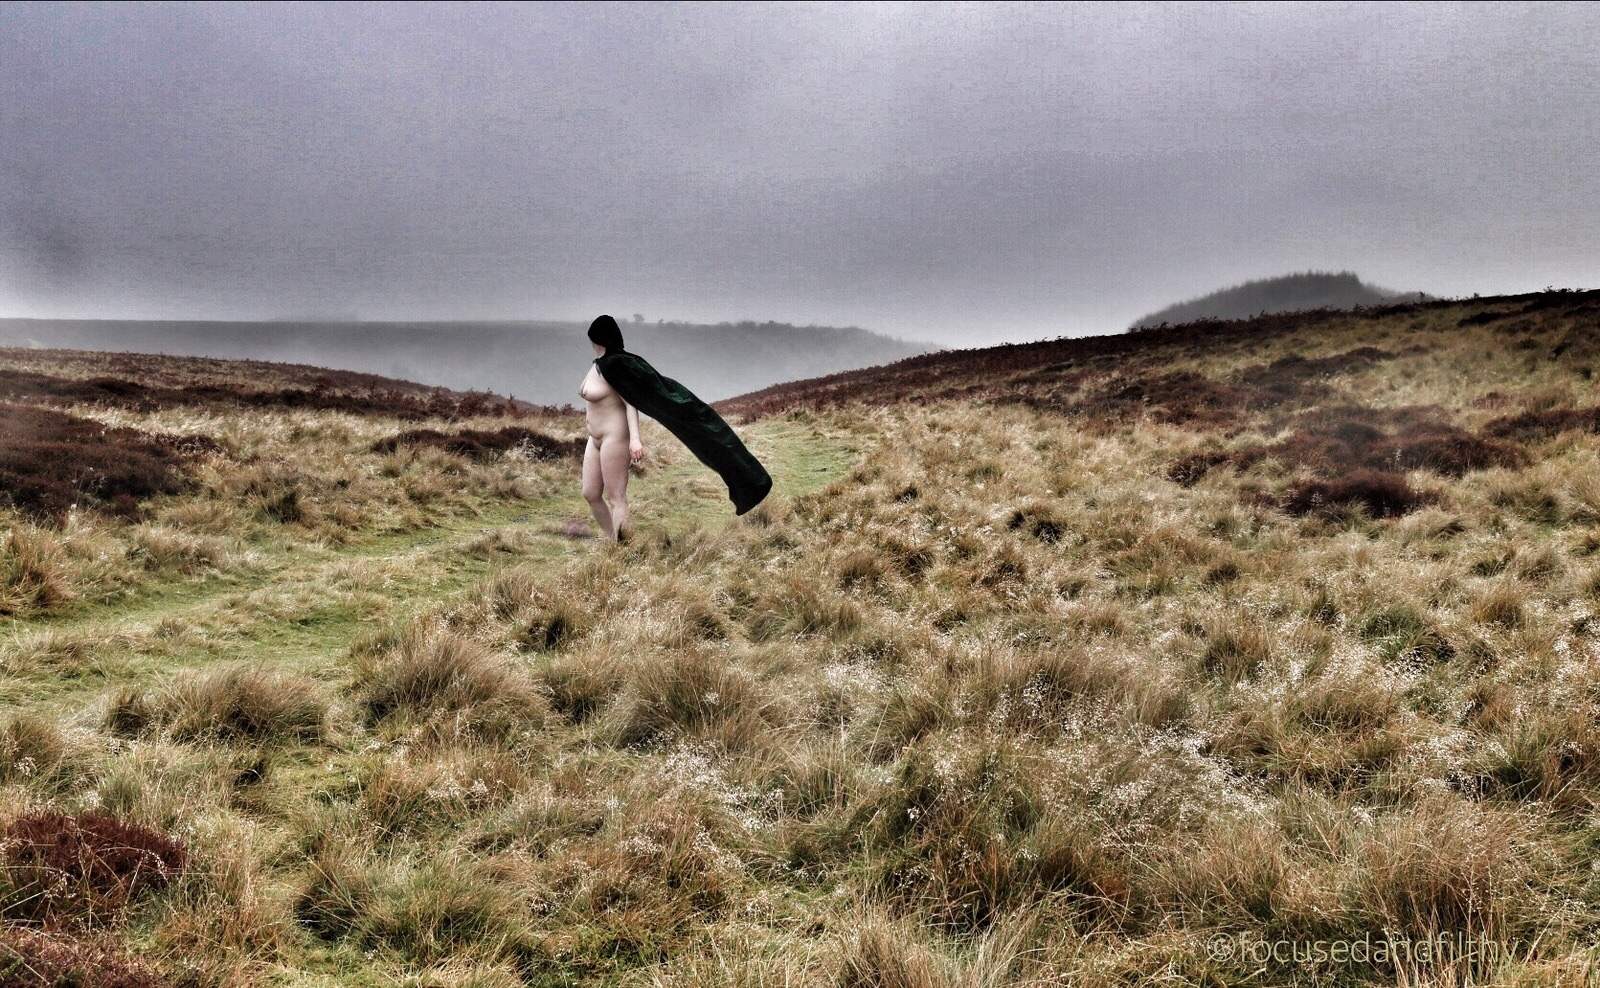 Colour photograph of a naked woman in a dark green cloak stood on a desolate Yorkshire Moor with the cape blowing behind her in the wind. Looking very windswept.